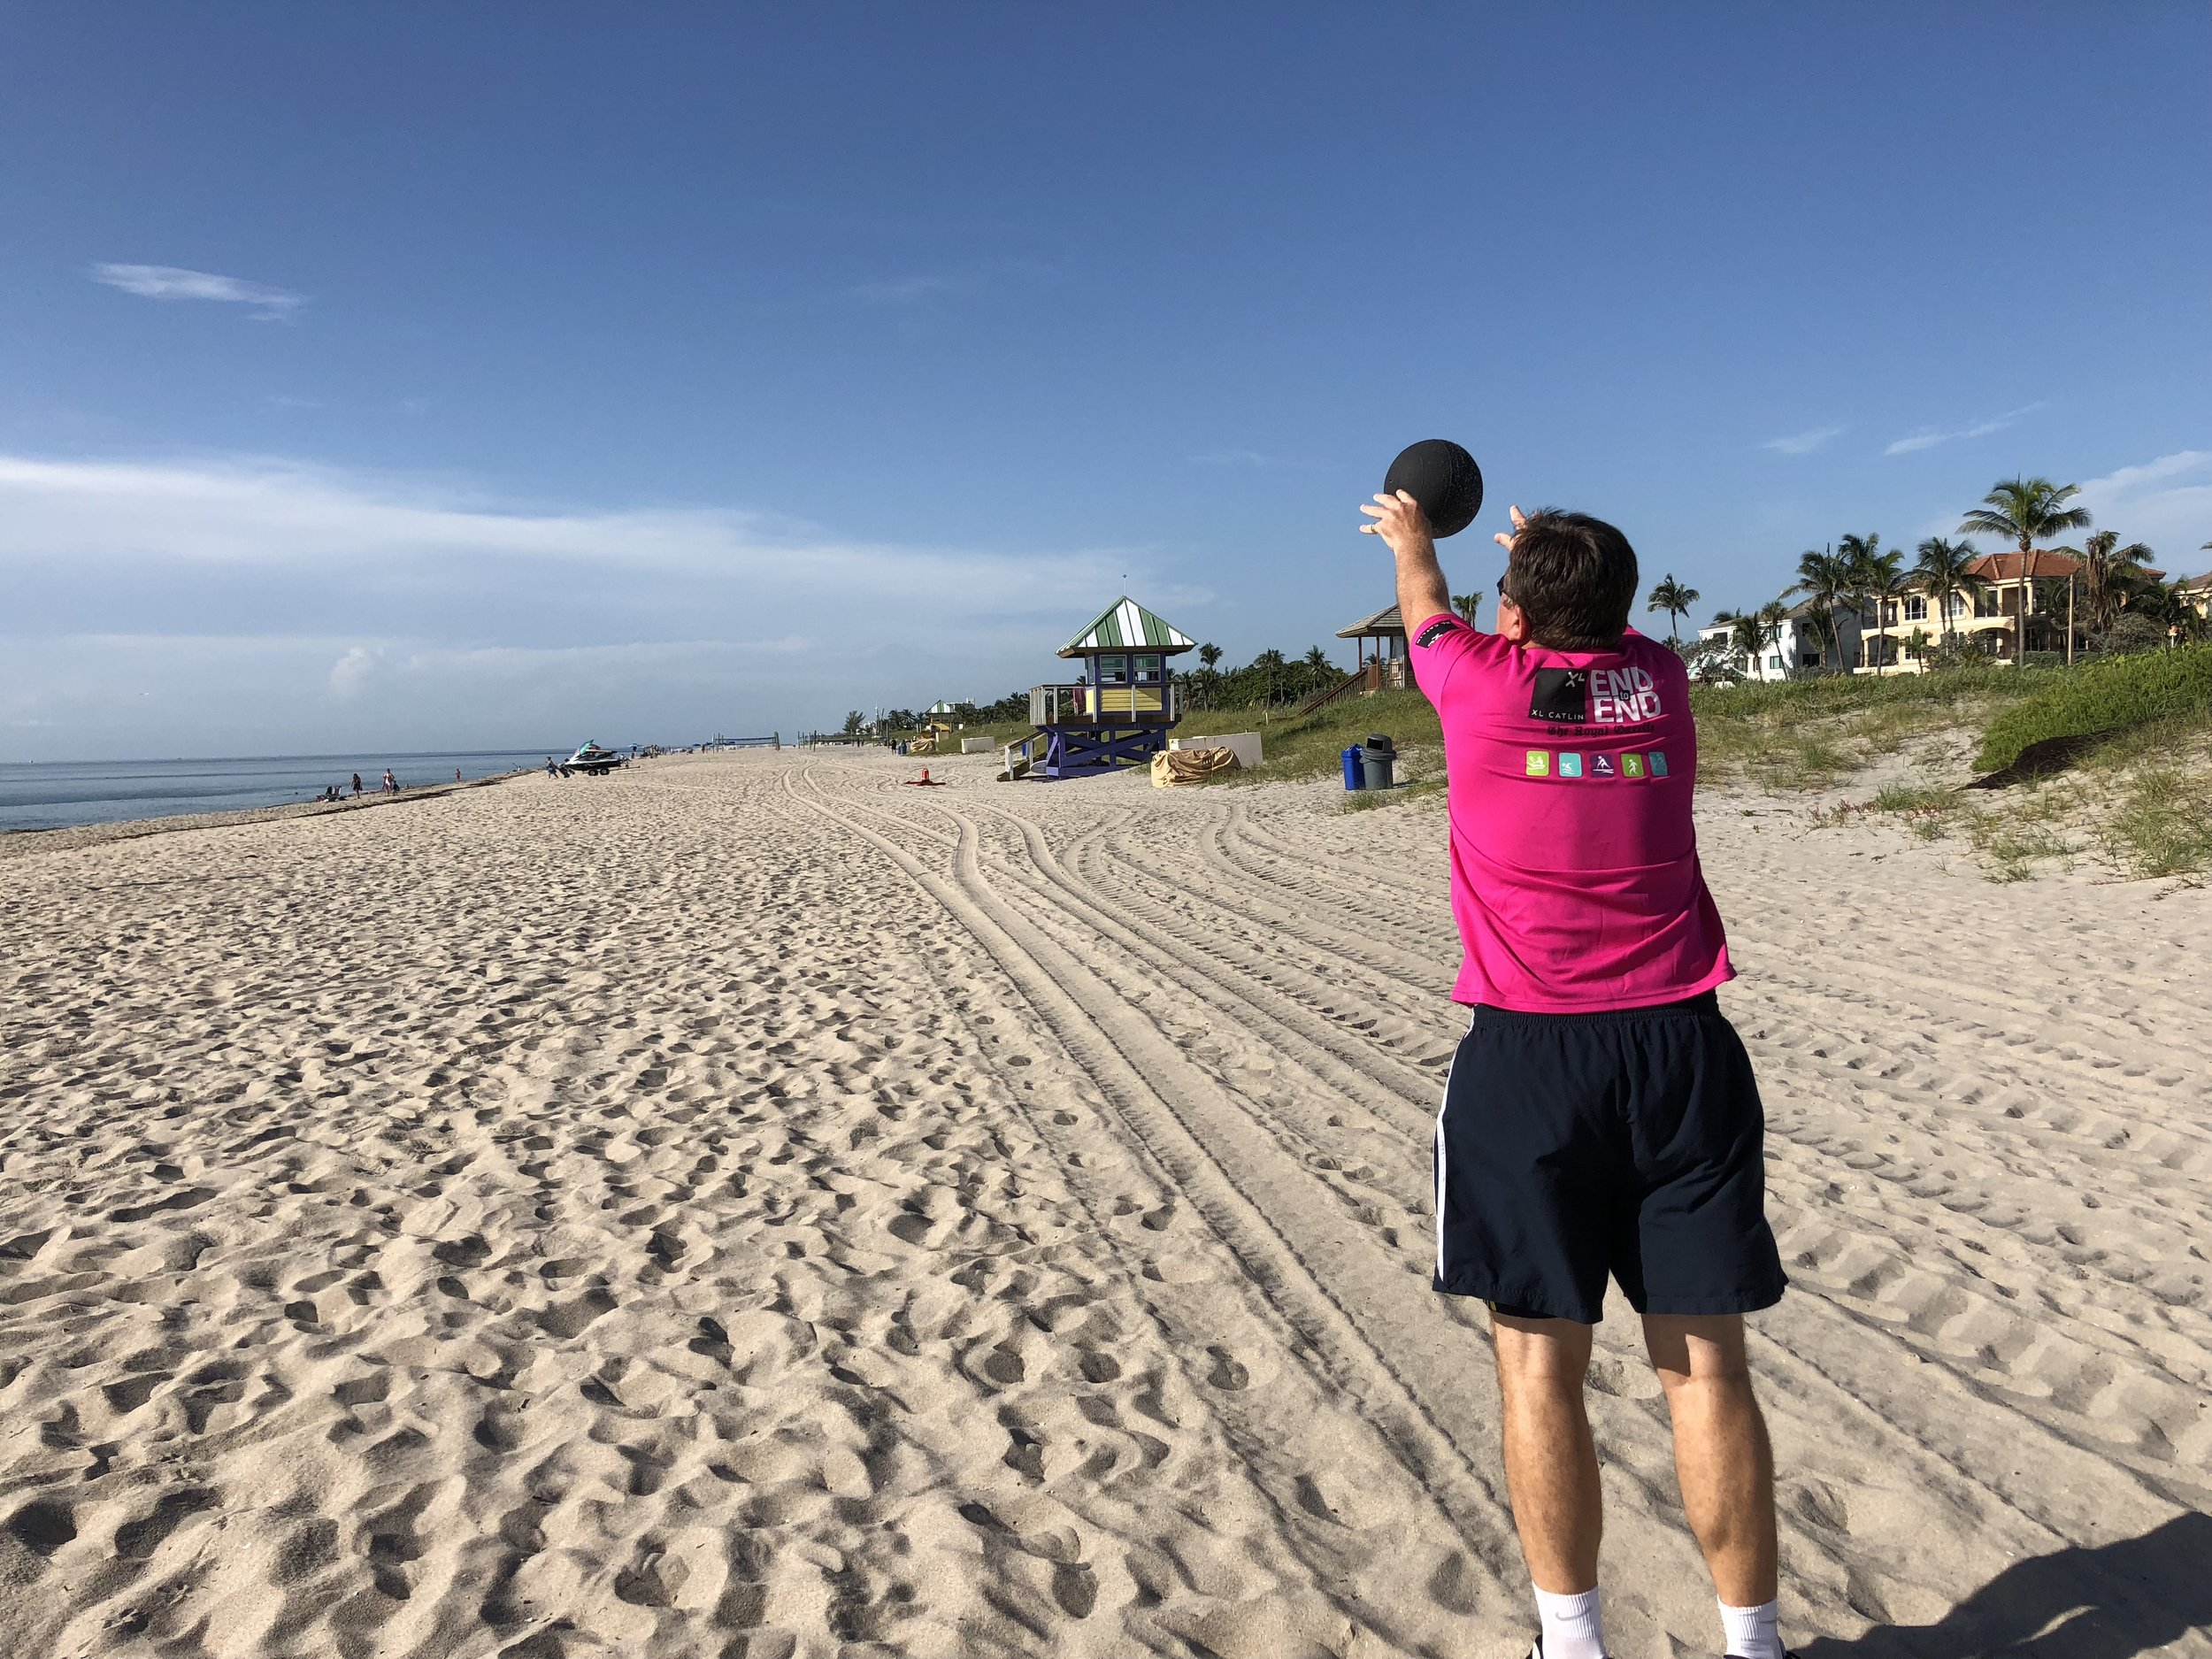 Man throws medicine ball on the beach during private retreat.